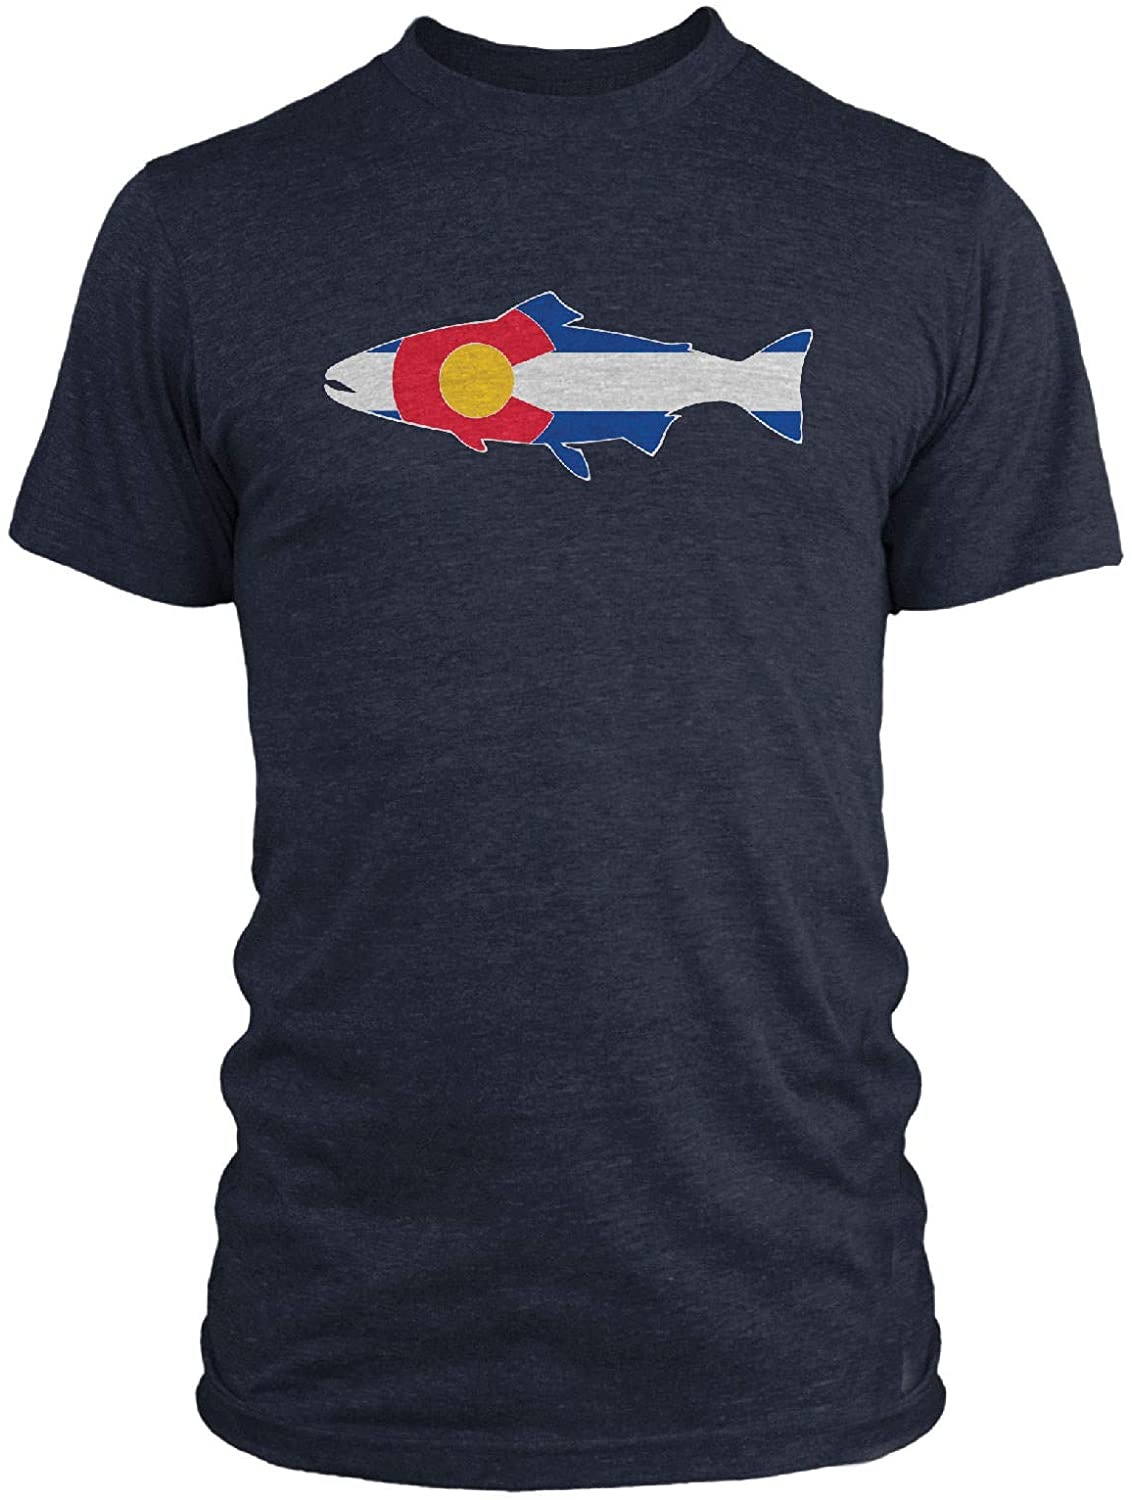 Rep Your Water Colorado Flag T-Shirt - XXLarge - Navy